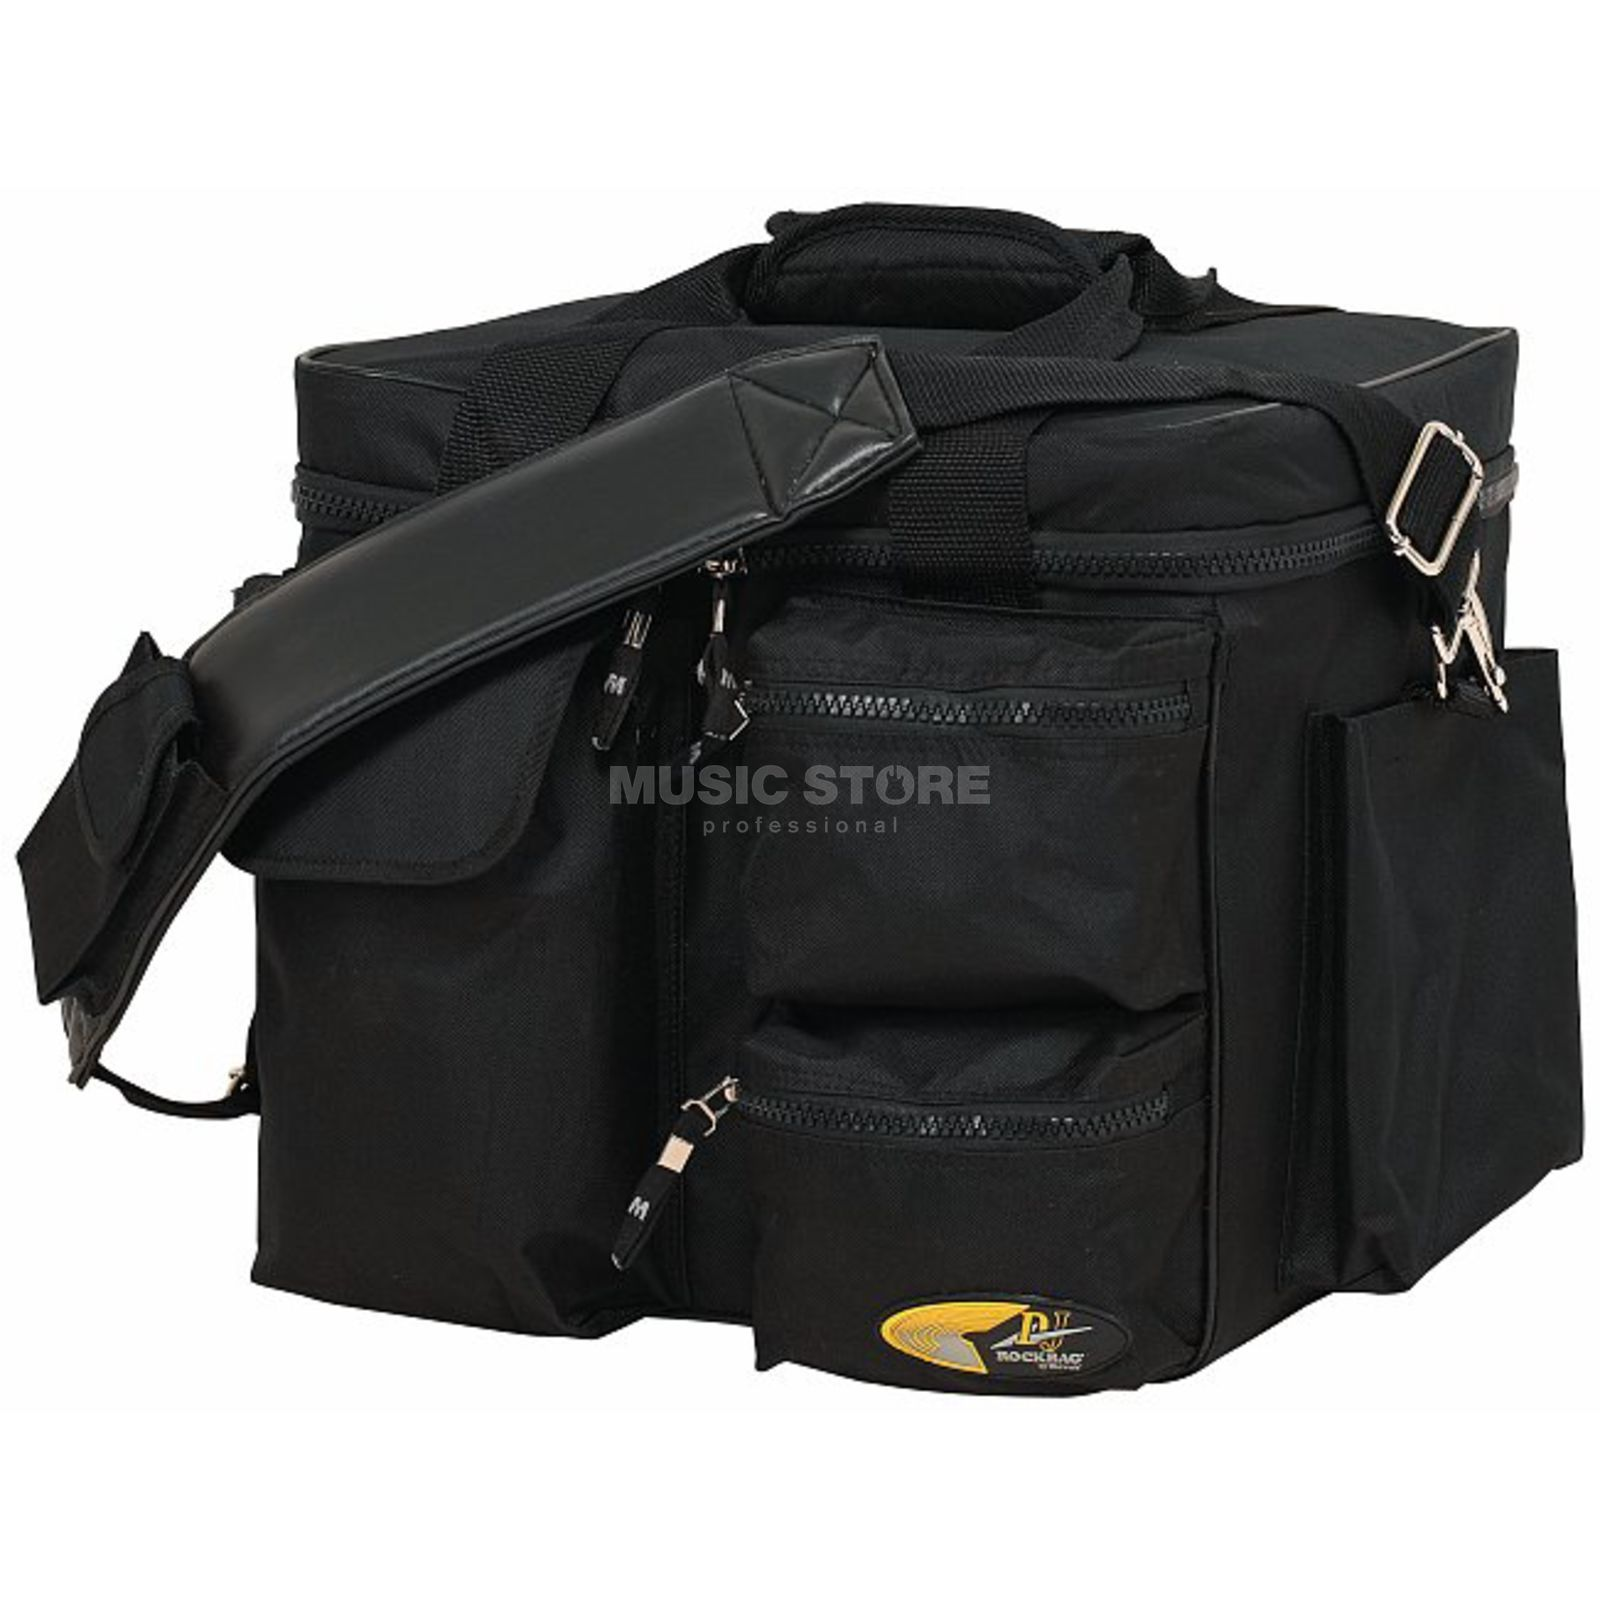 Rockbag DJ Nylon Record Bag RB 27150 B for 80 LPs, black Produktbillede